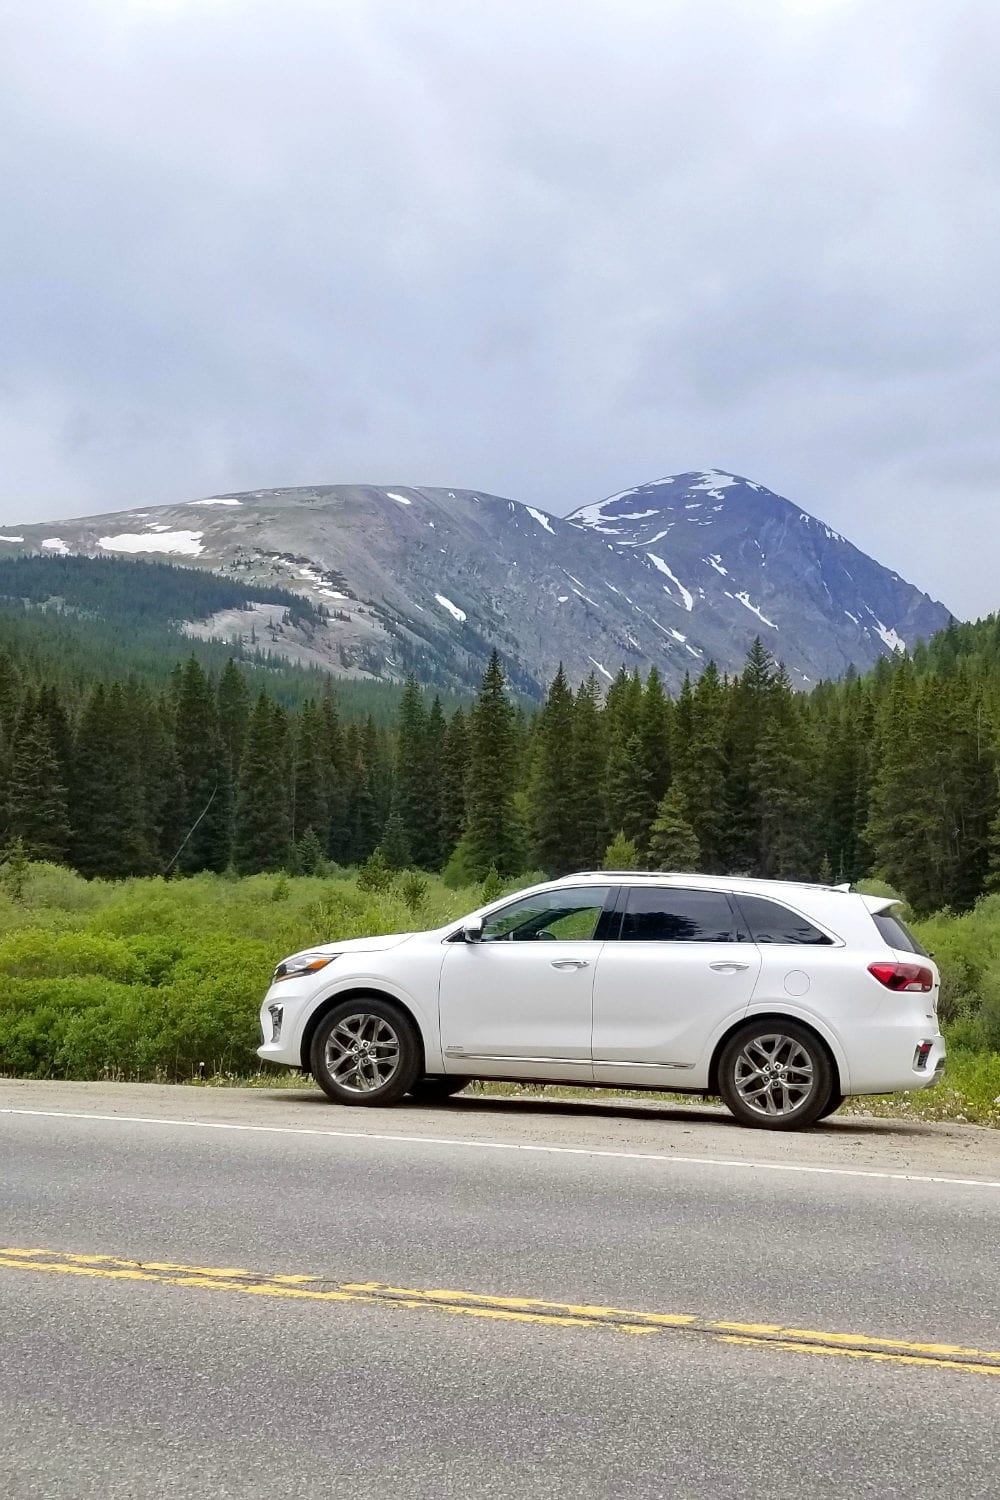 Driving the 2019 Kia Sorento through the mountains of Colorado!